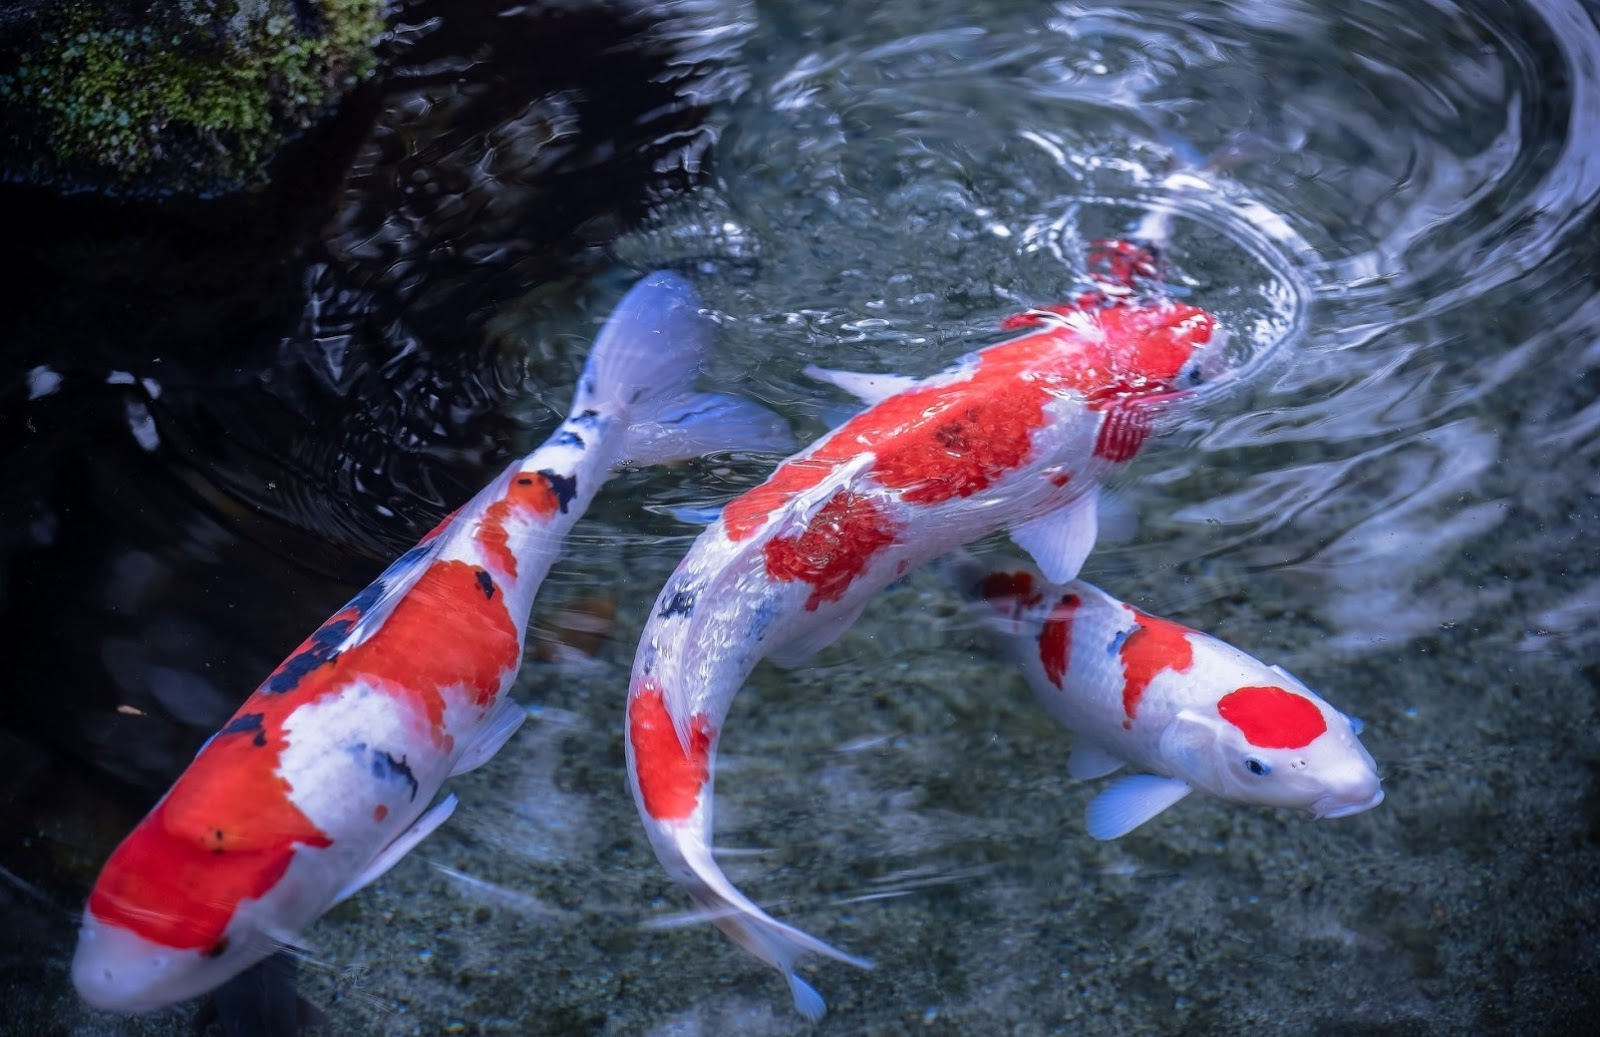 Koi fish fishes world hd images free photos for Red and white koi fish